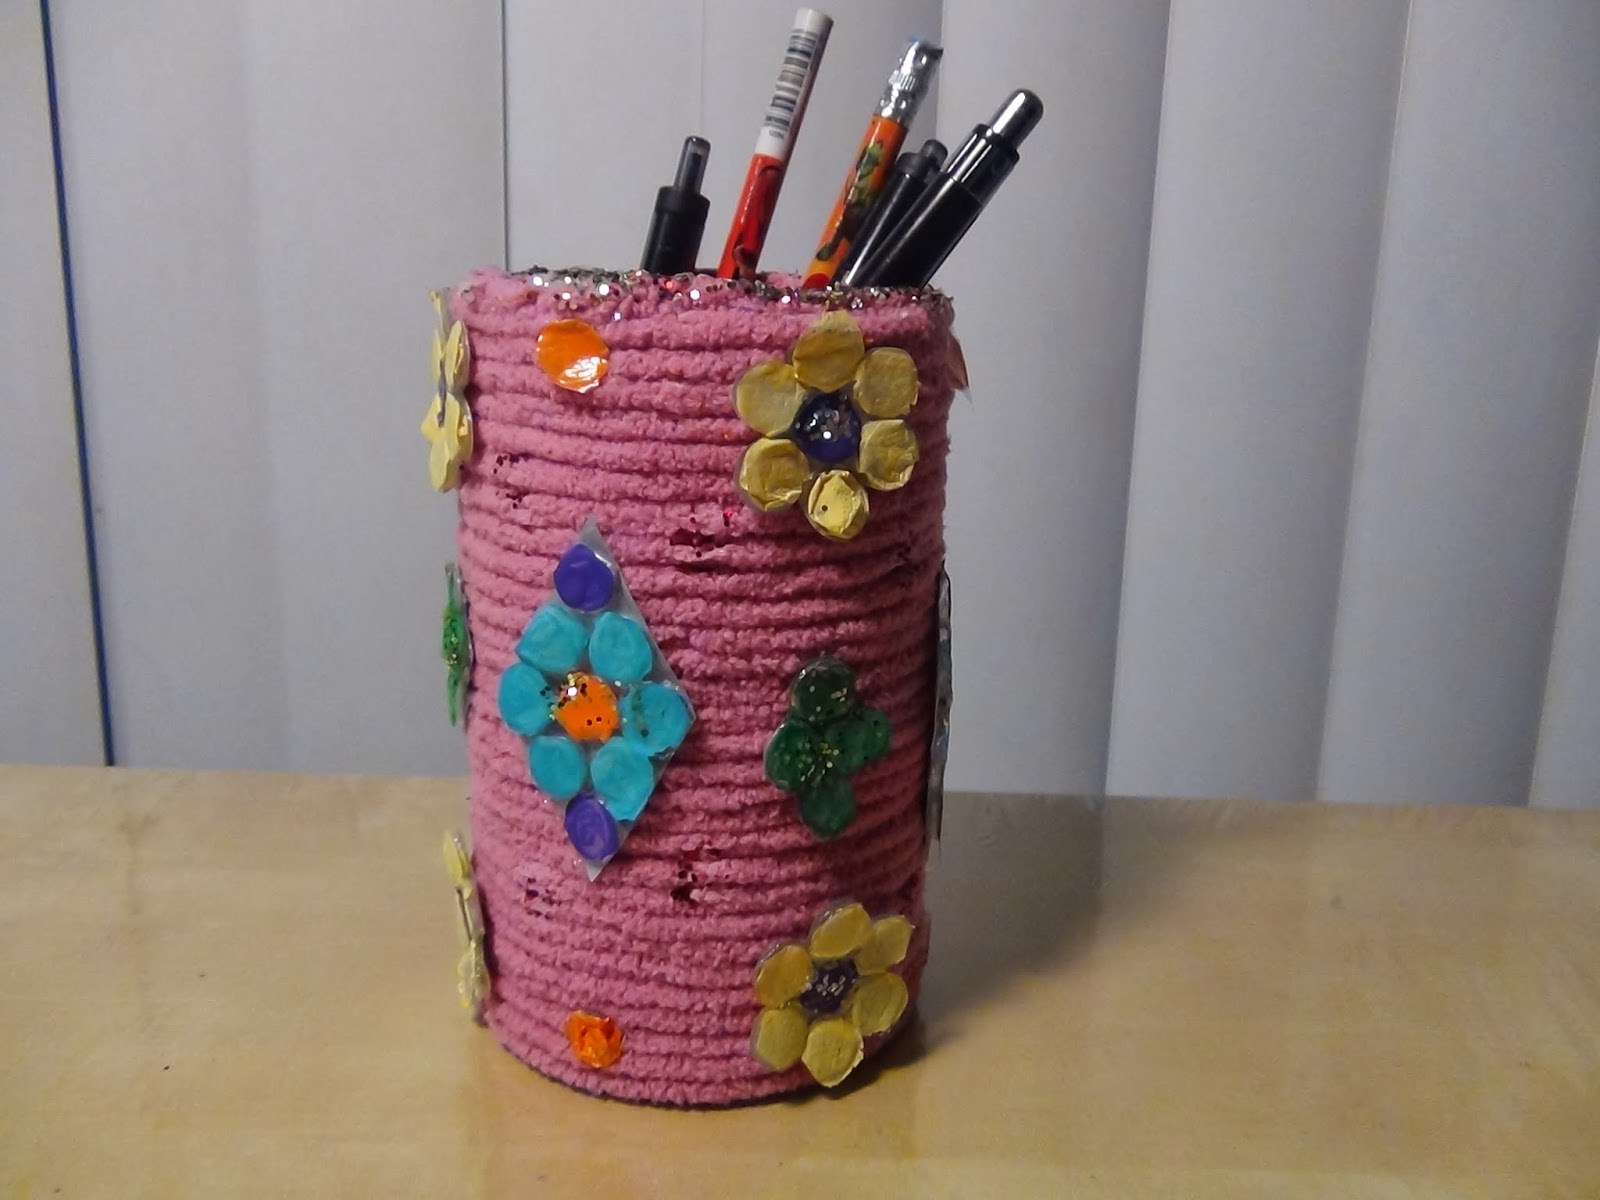 Creative diy crafts diy pen spoon or brush holder with for House made by waste material